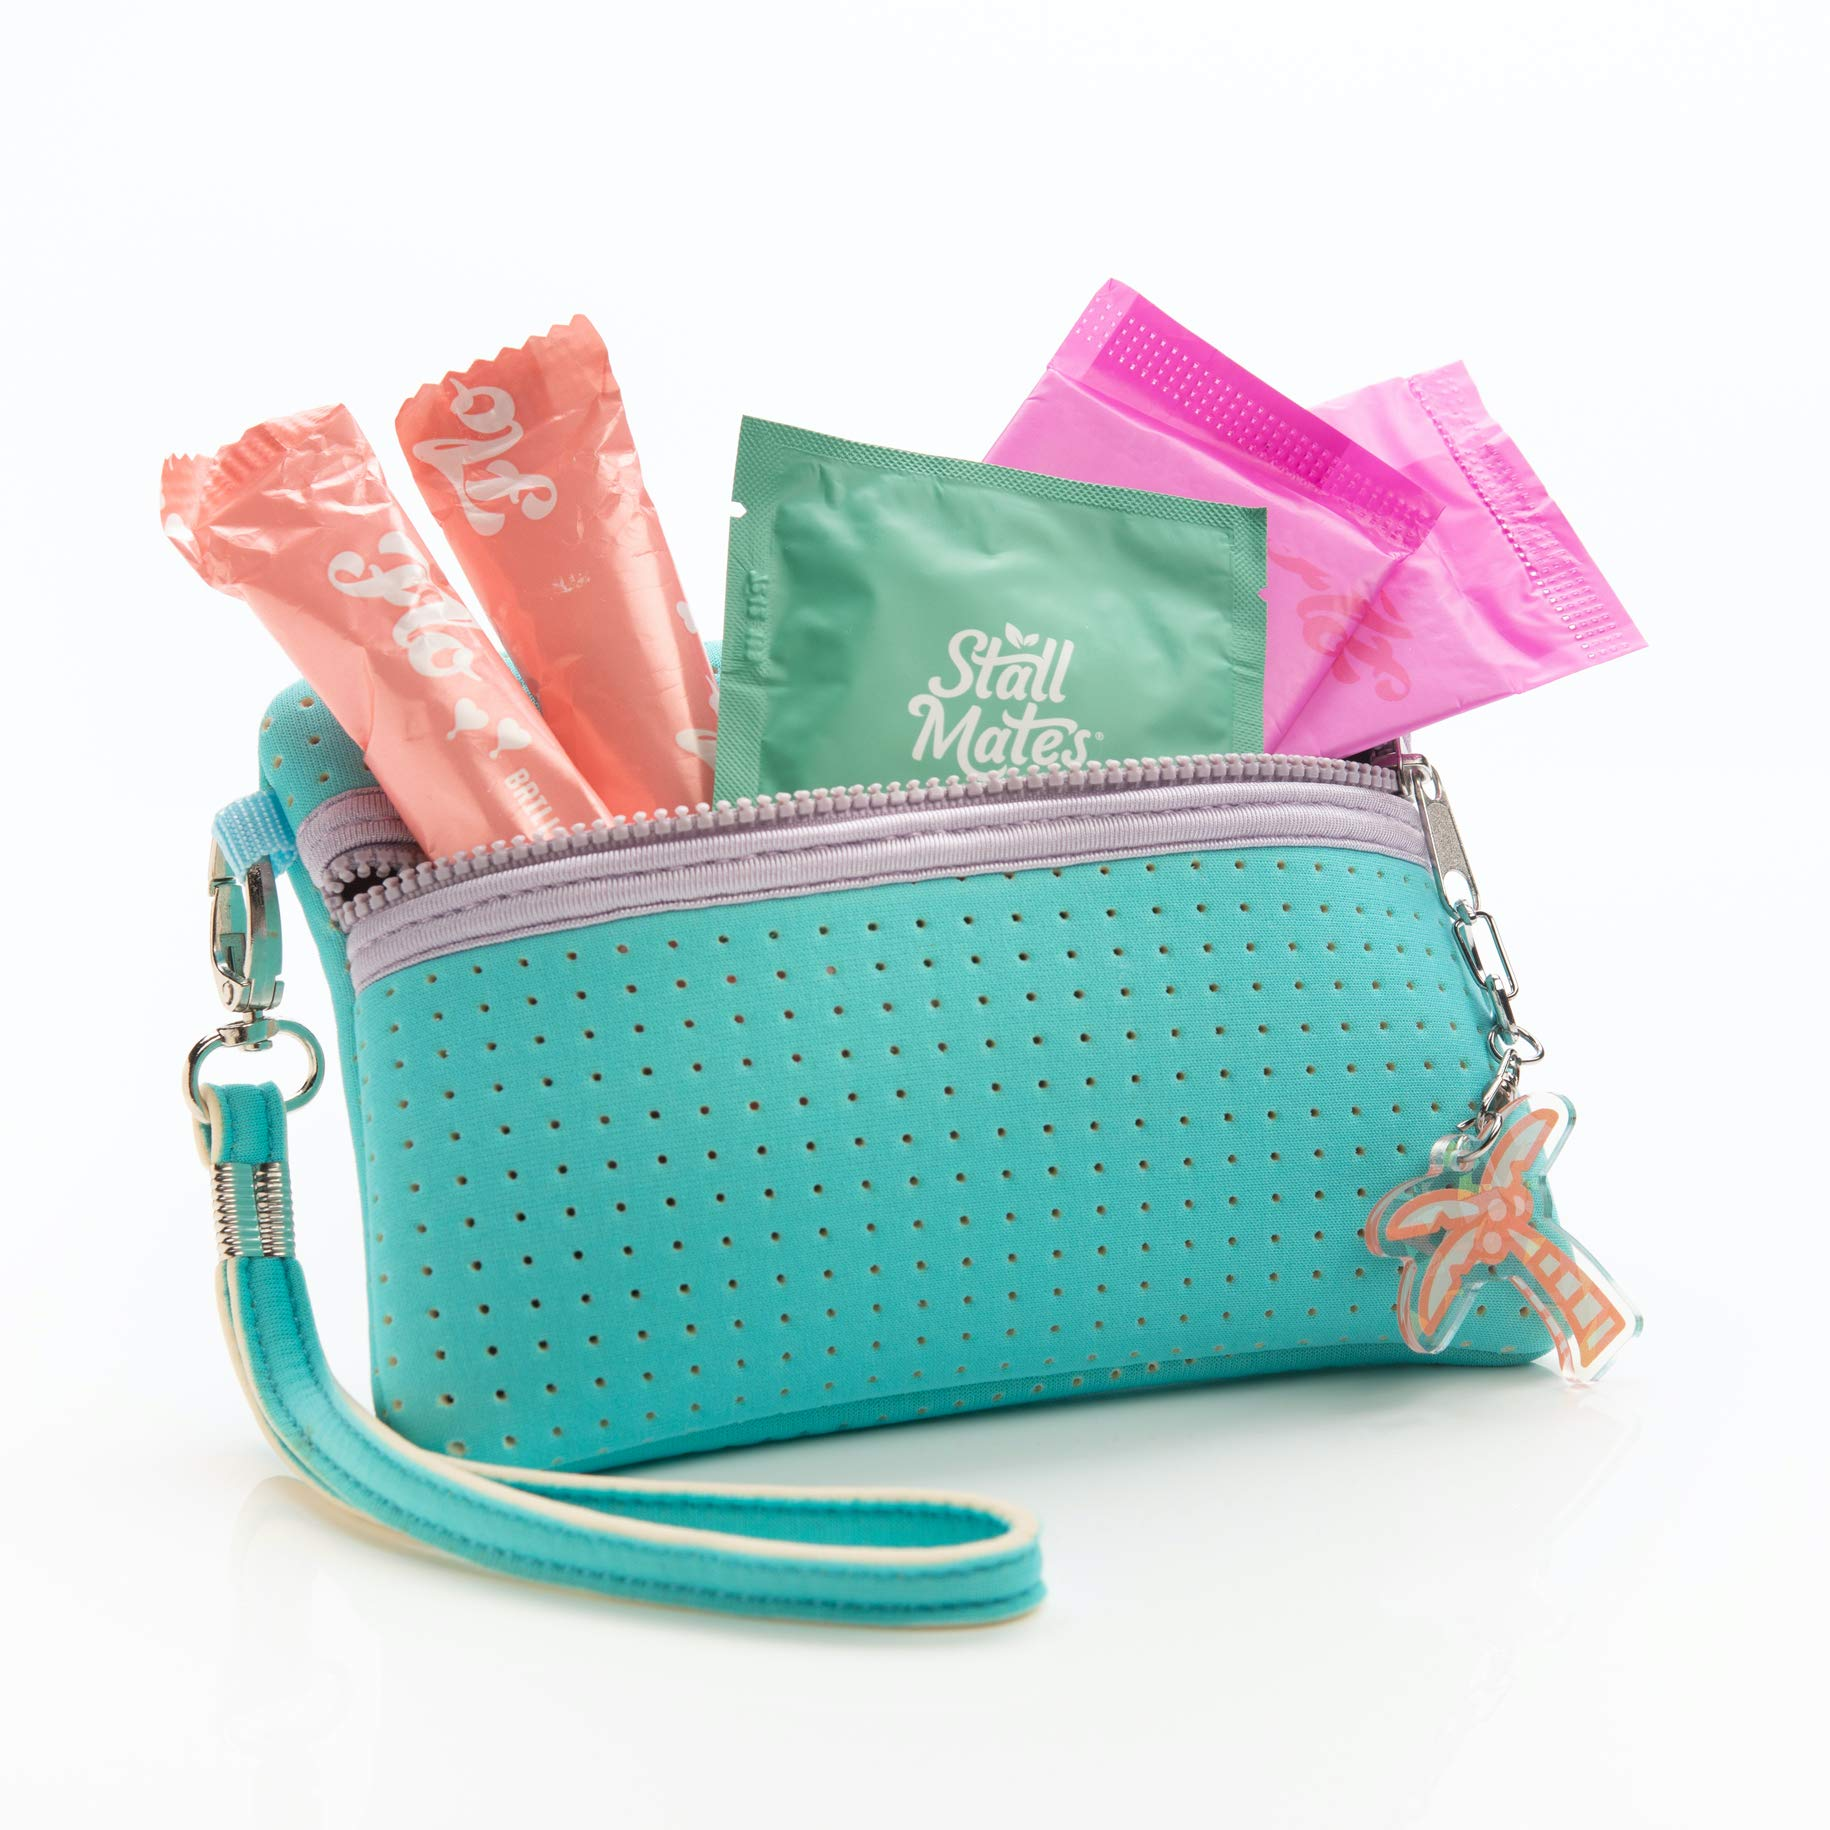 First Period Kit for Teens & Tweens - Teen Girl Gift - Includes 2 Organic Cotton Tampons, 2 Organic Cotton Pantyliners, 1 Hypoallergenic Wet Wipe